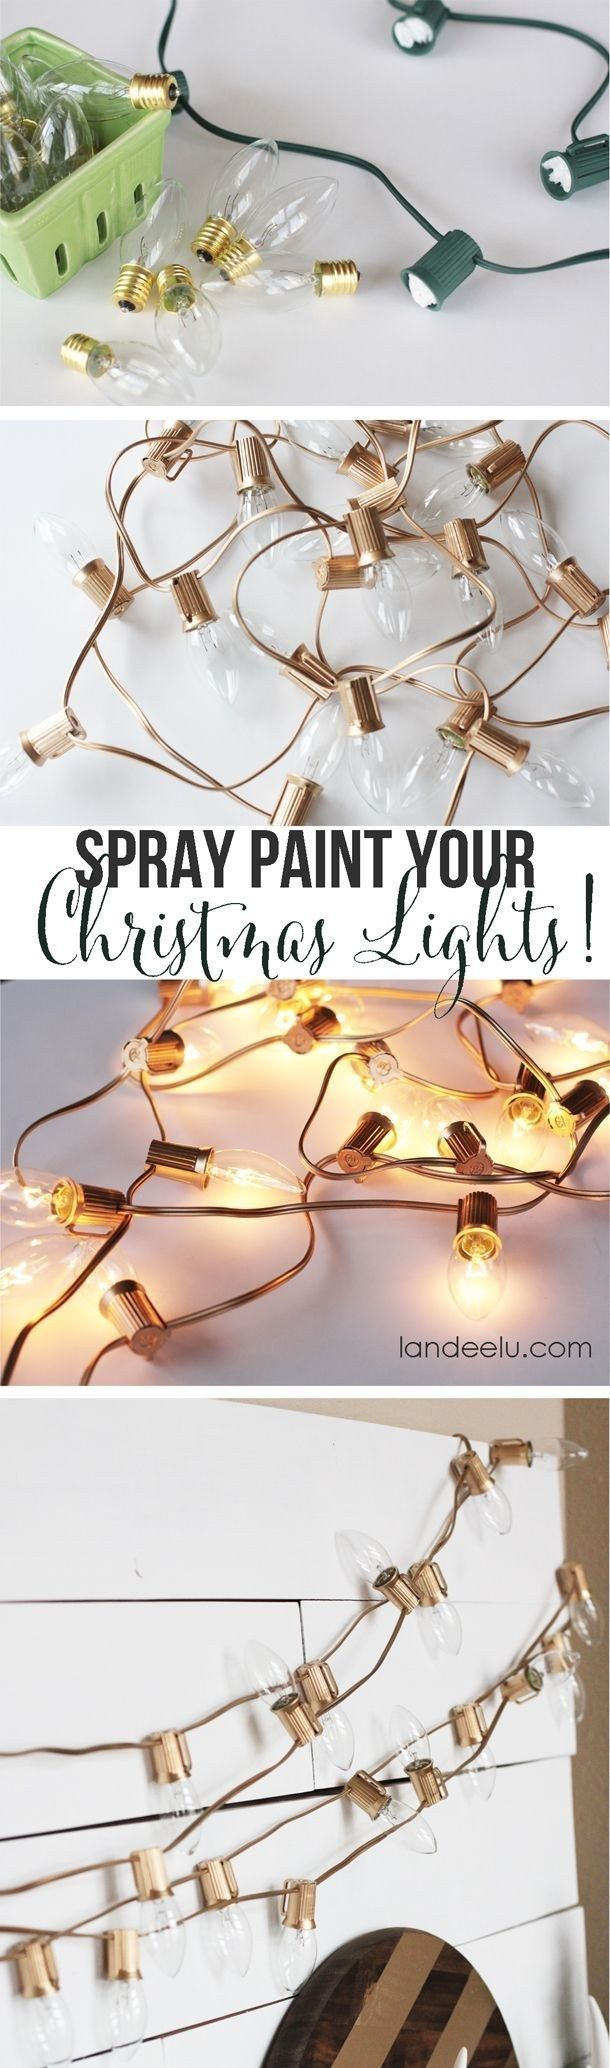 String Light DIY ideas for Cool Home Decor   Spray Painted Christmas Lights are Fun for Teens Room  Dorm  Apartment or Home